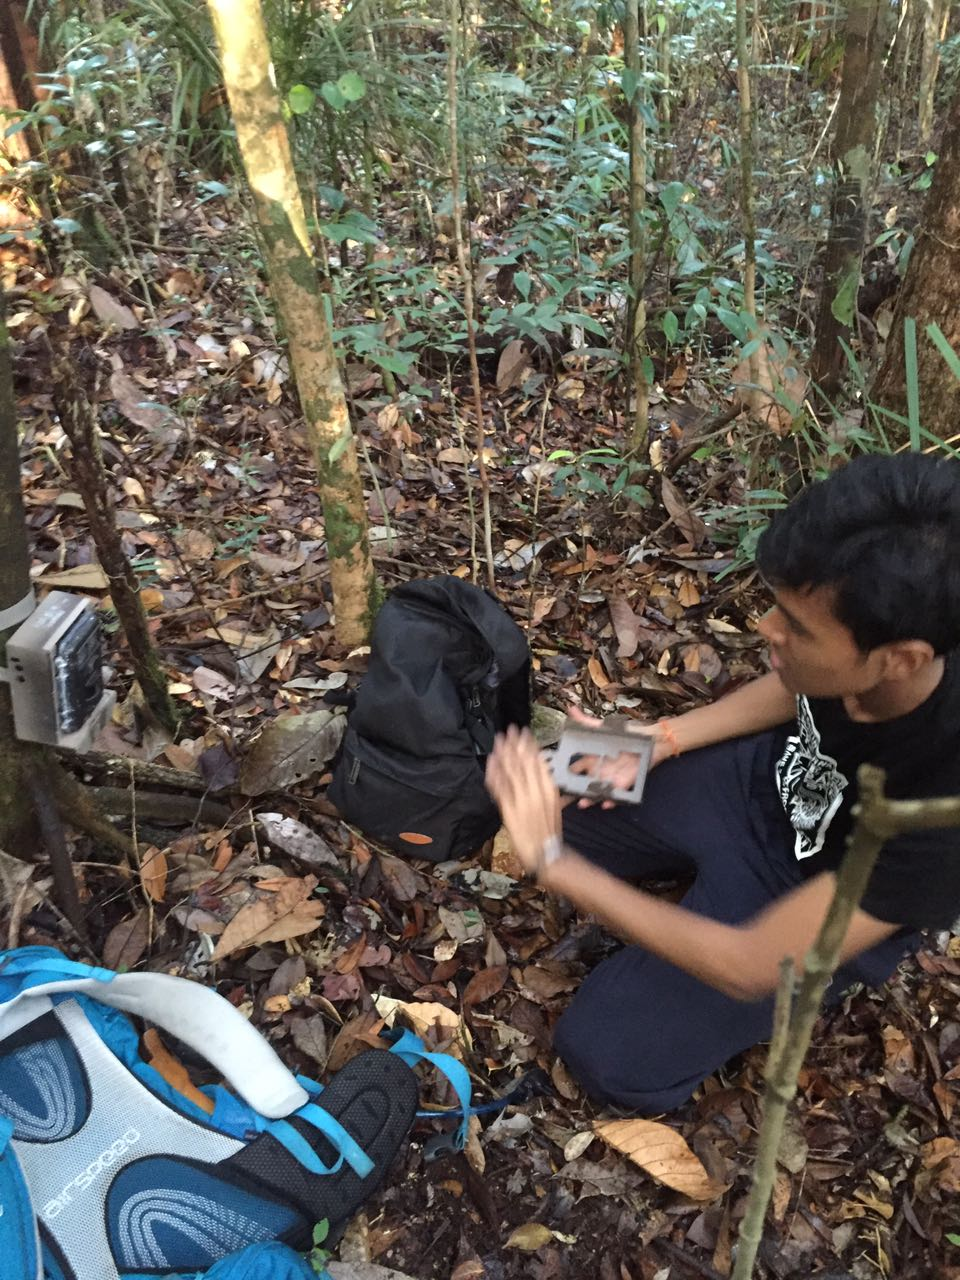 This picture was taken during my final degree year, working on my final year project in Sarawak using camera traps and scent lure as bait.